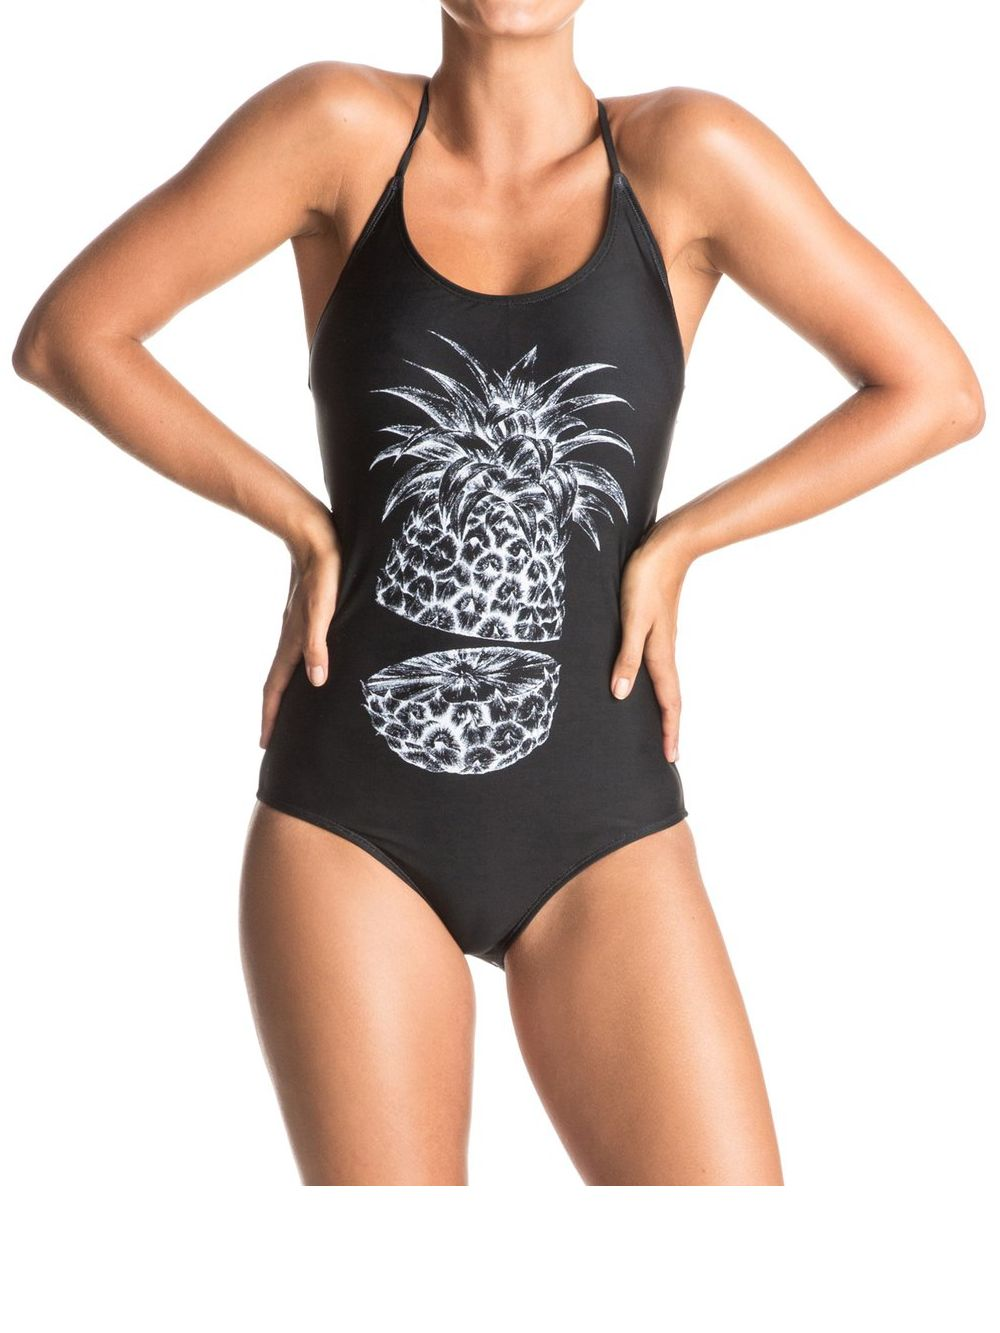 Roxy Roxy summer pacific swimsuit, Black